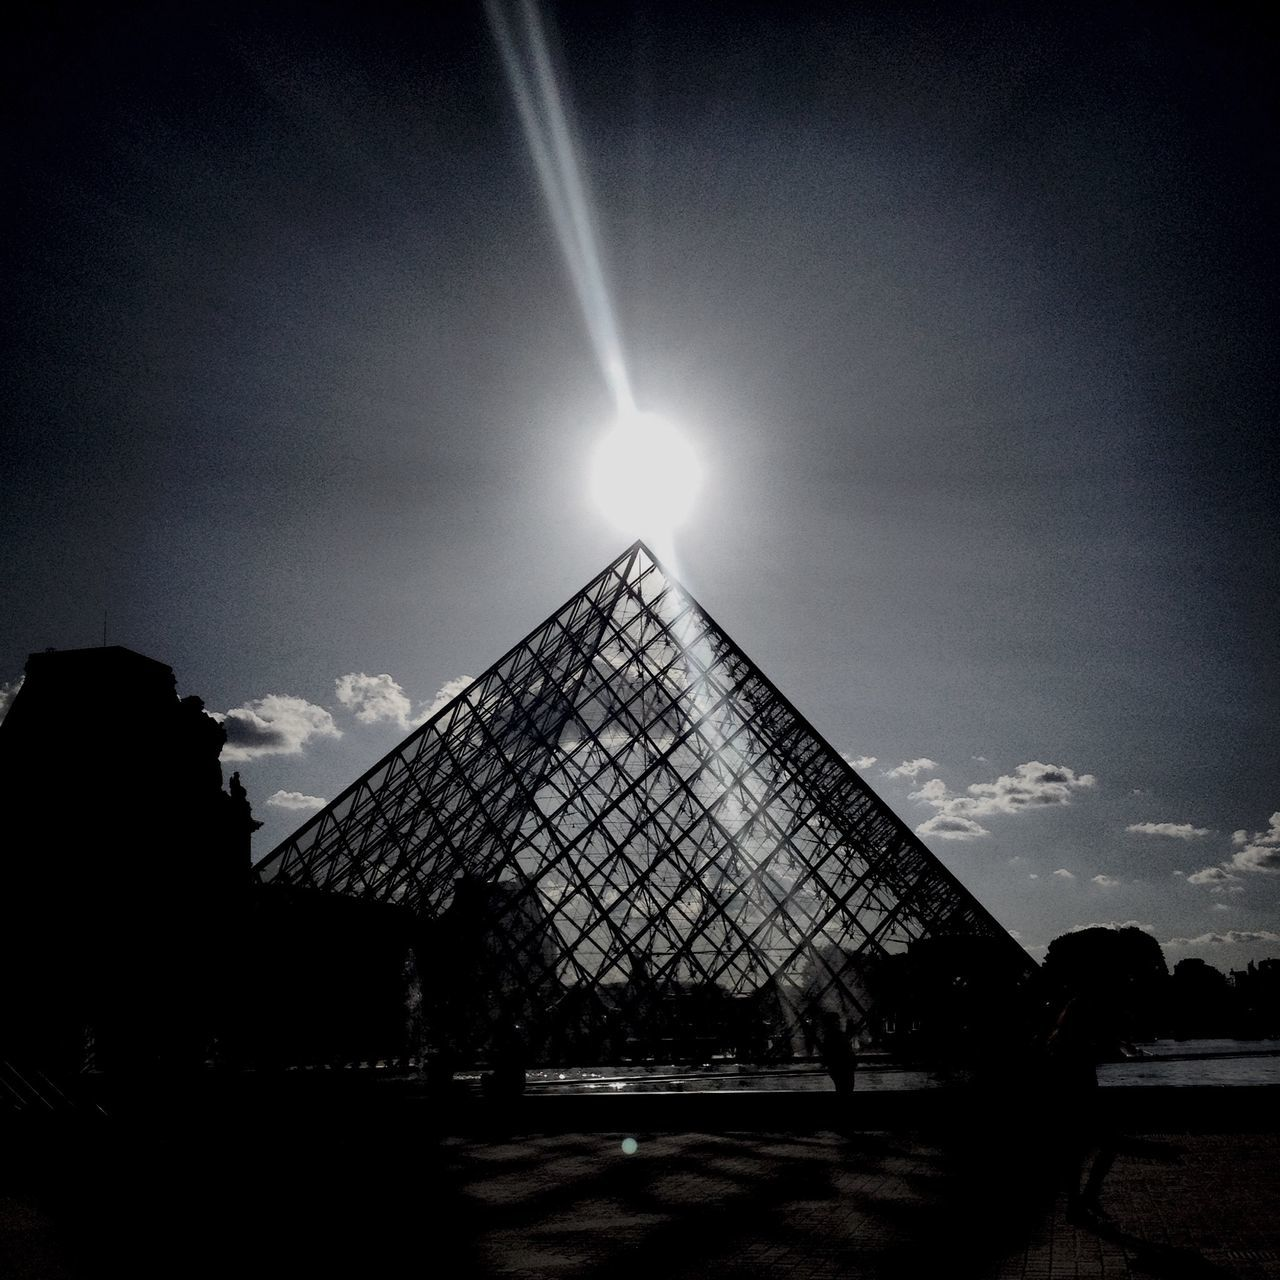 sky, sun, architecture, built structure, real people, building exterior, low angle view, outdoors, pyramid, nature, day